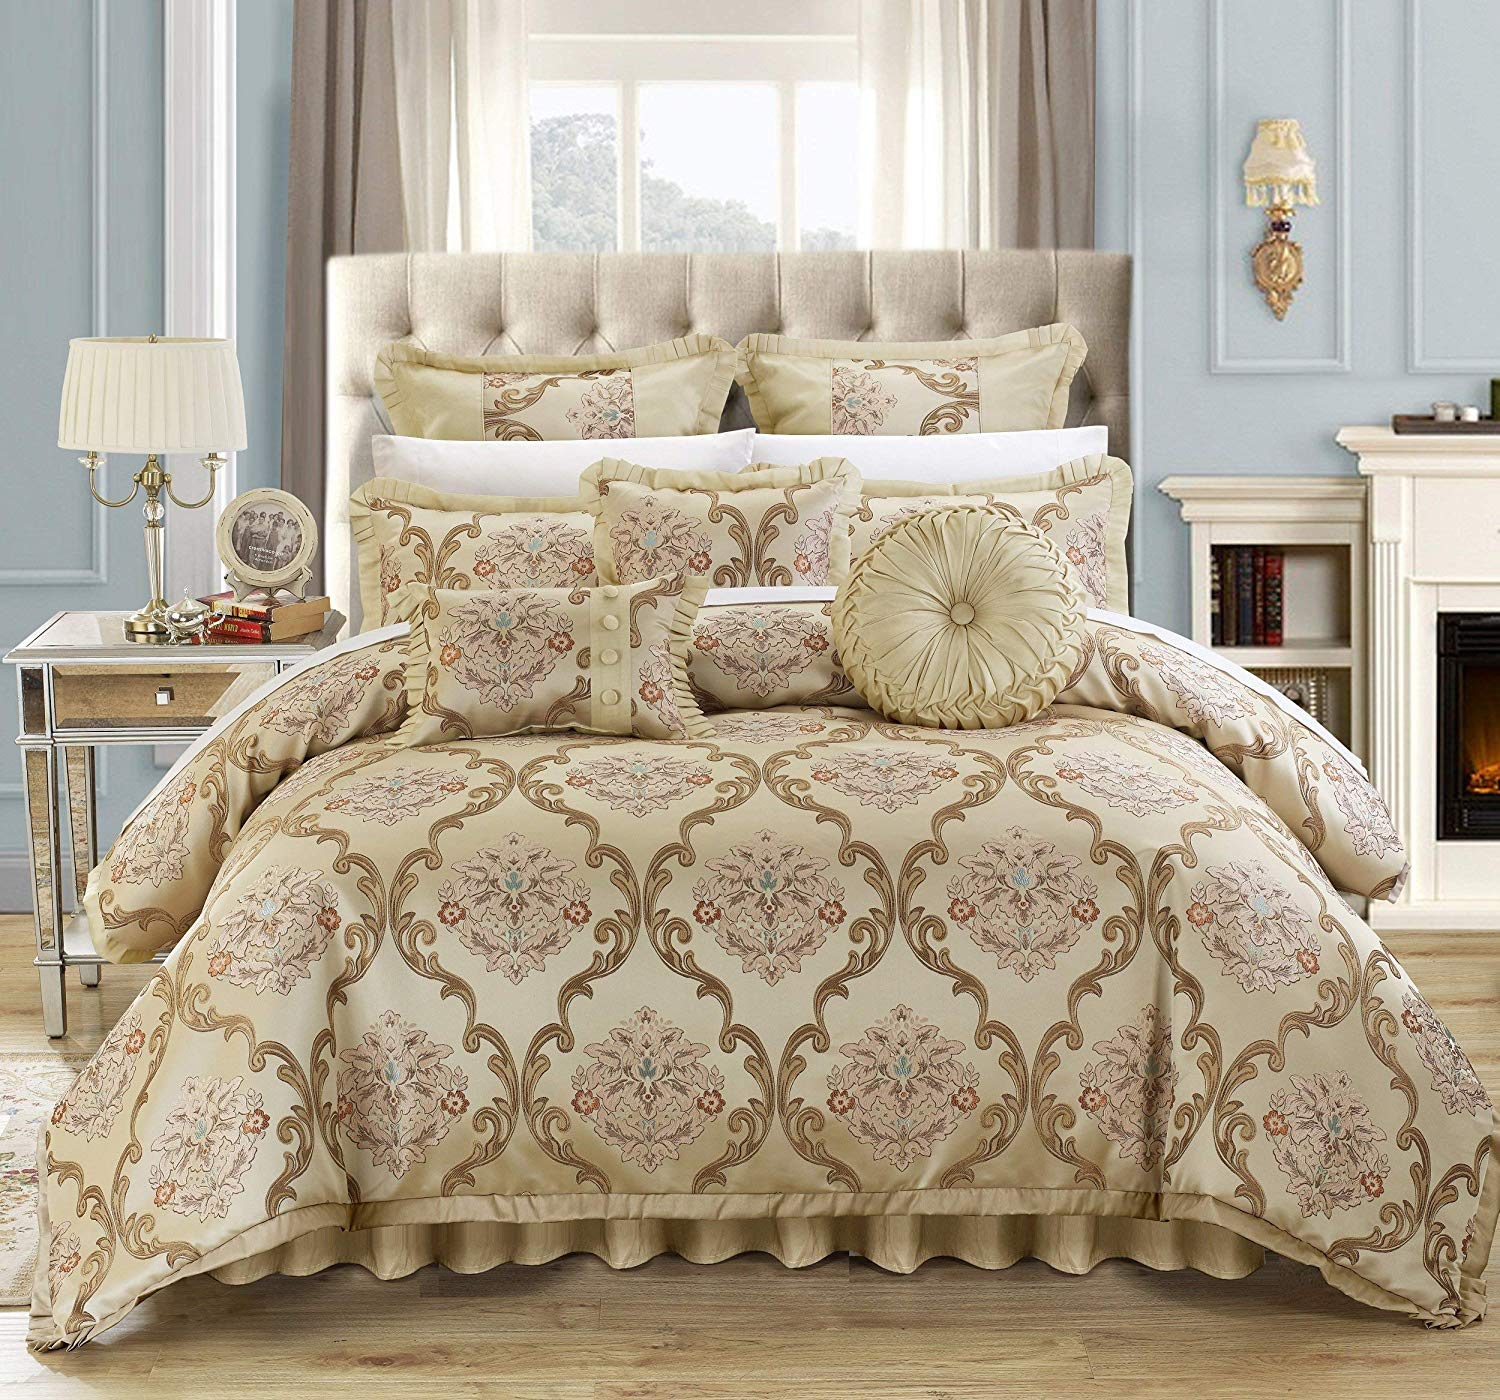 Chic Home 9 Piece Aubrey Decorator Upholstery Comforter Set and Pillows